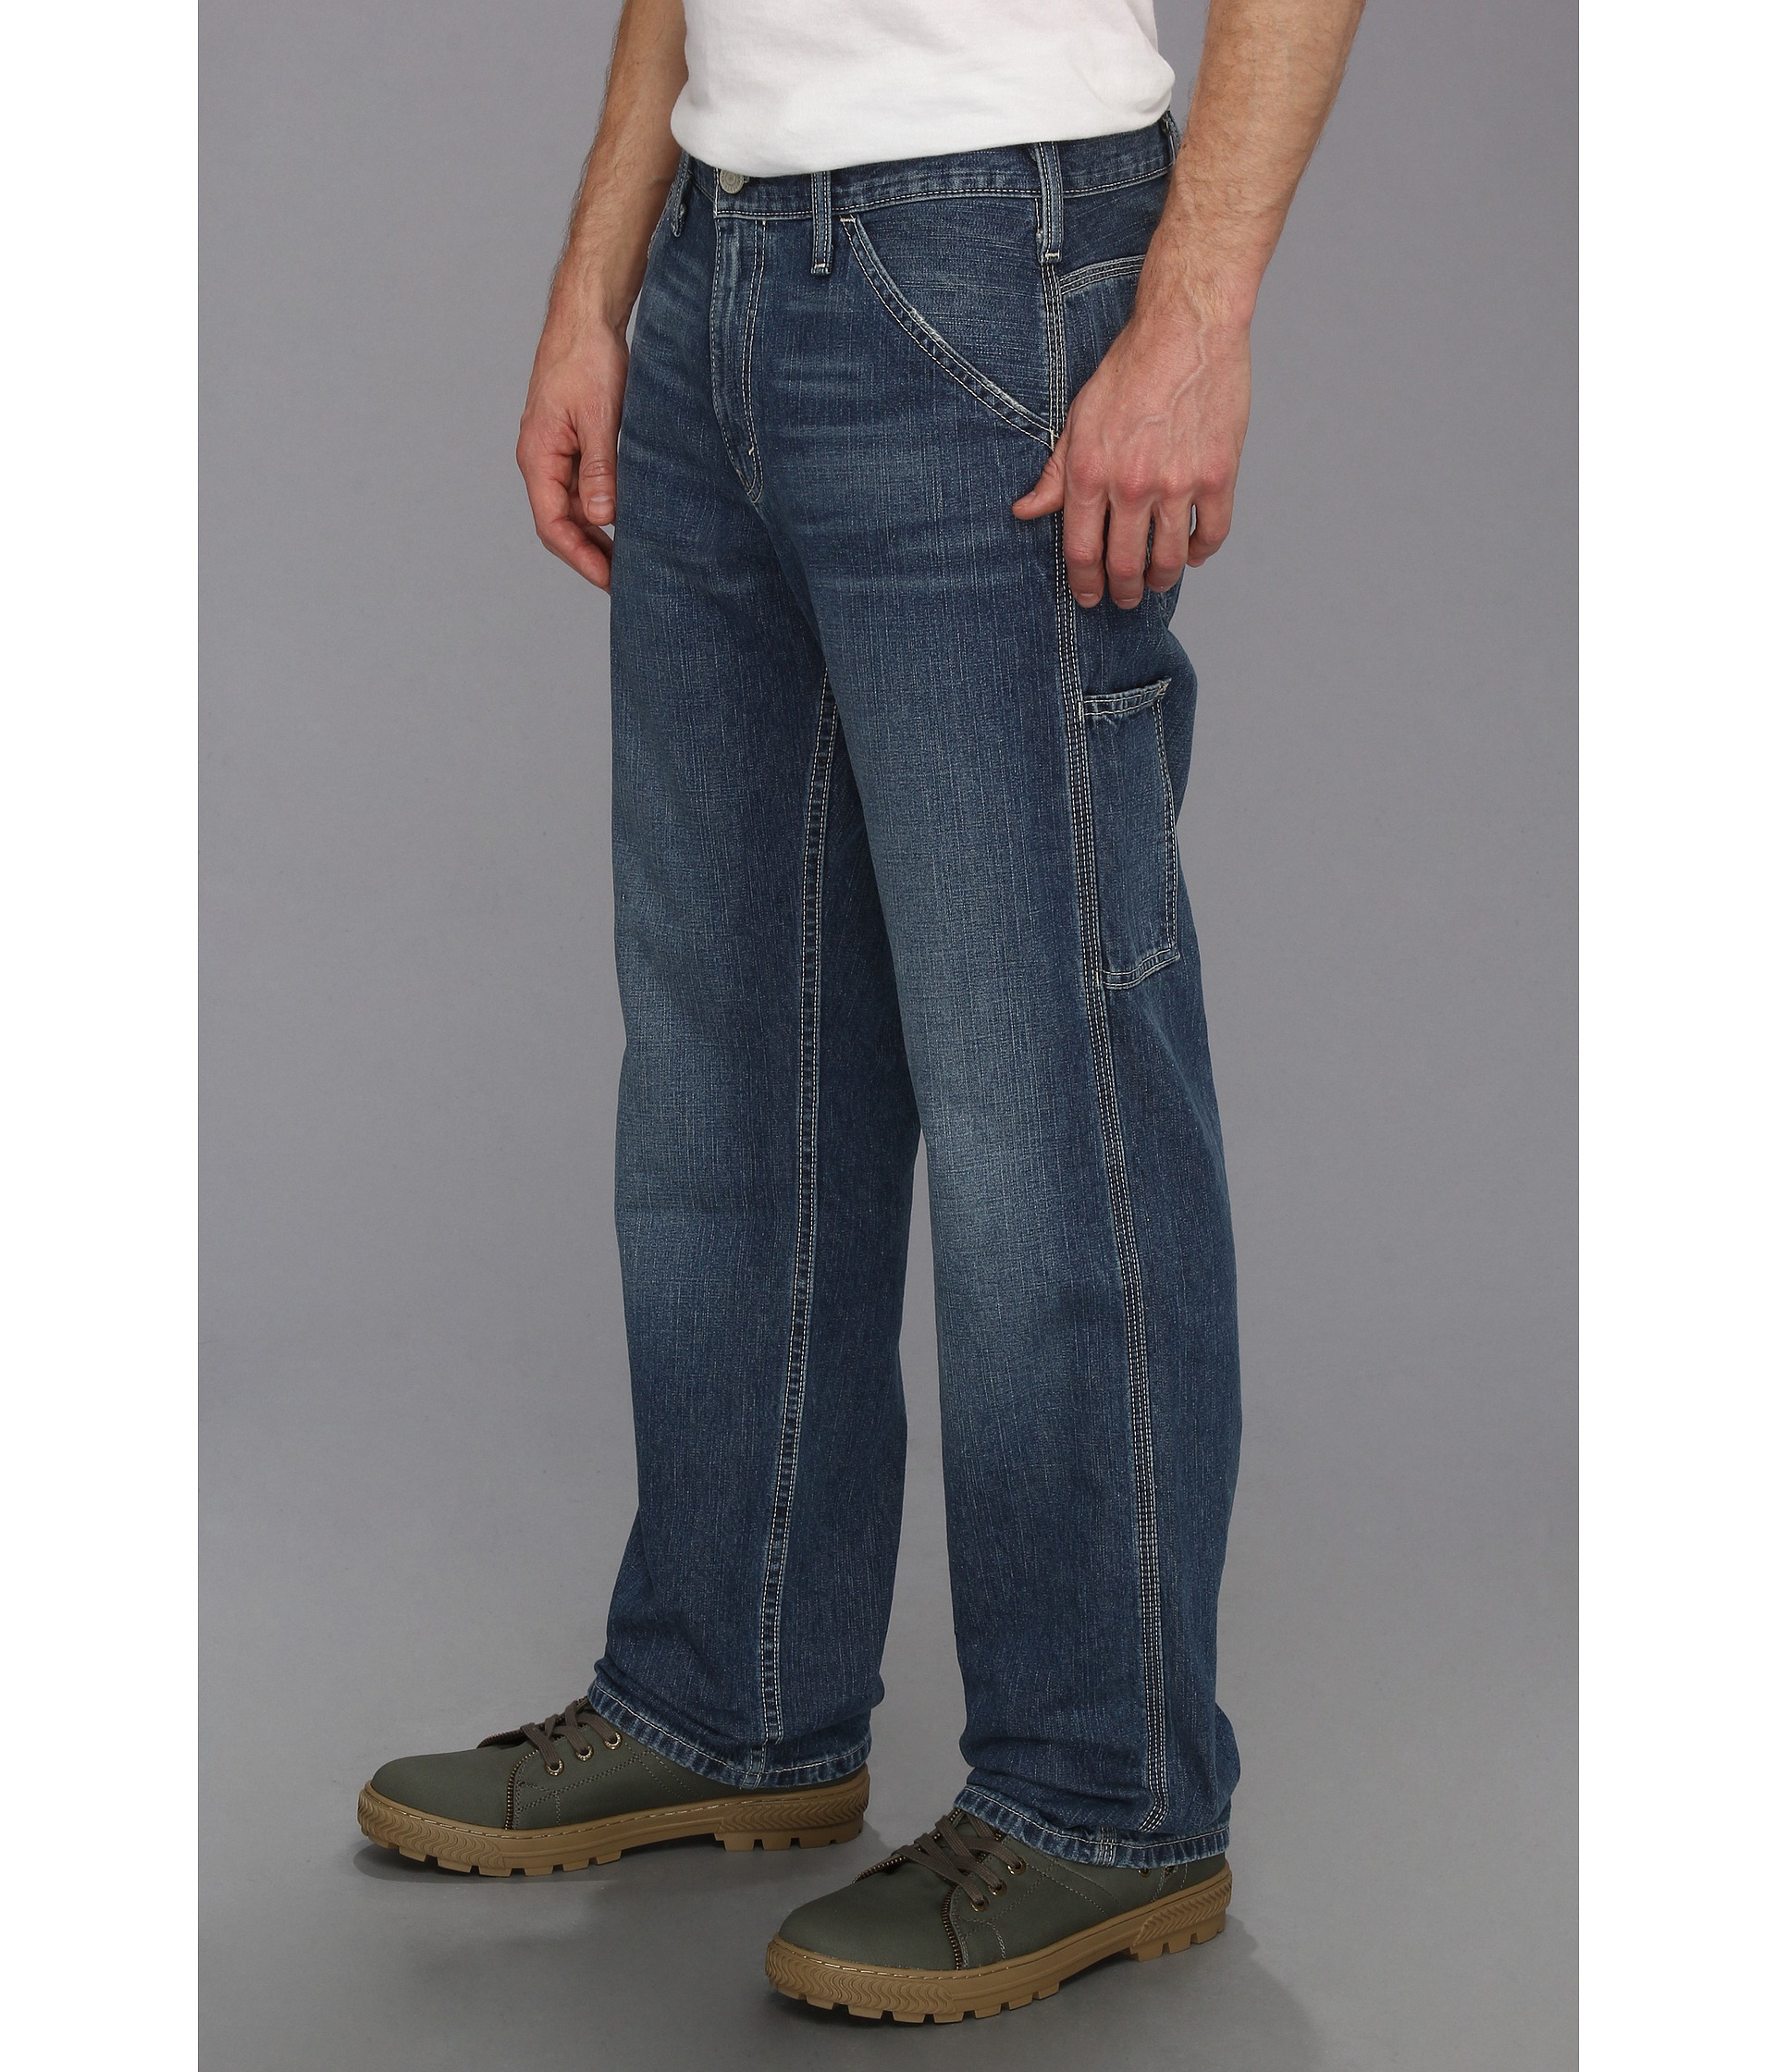 Levis Mens Carpenter Jean Zapposcom Free Shipping